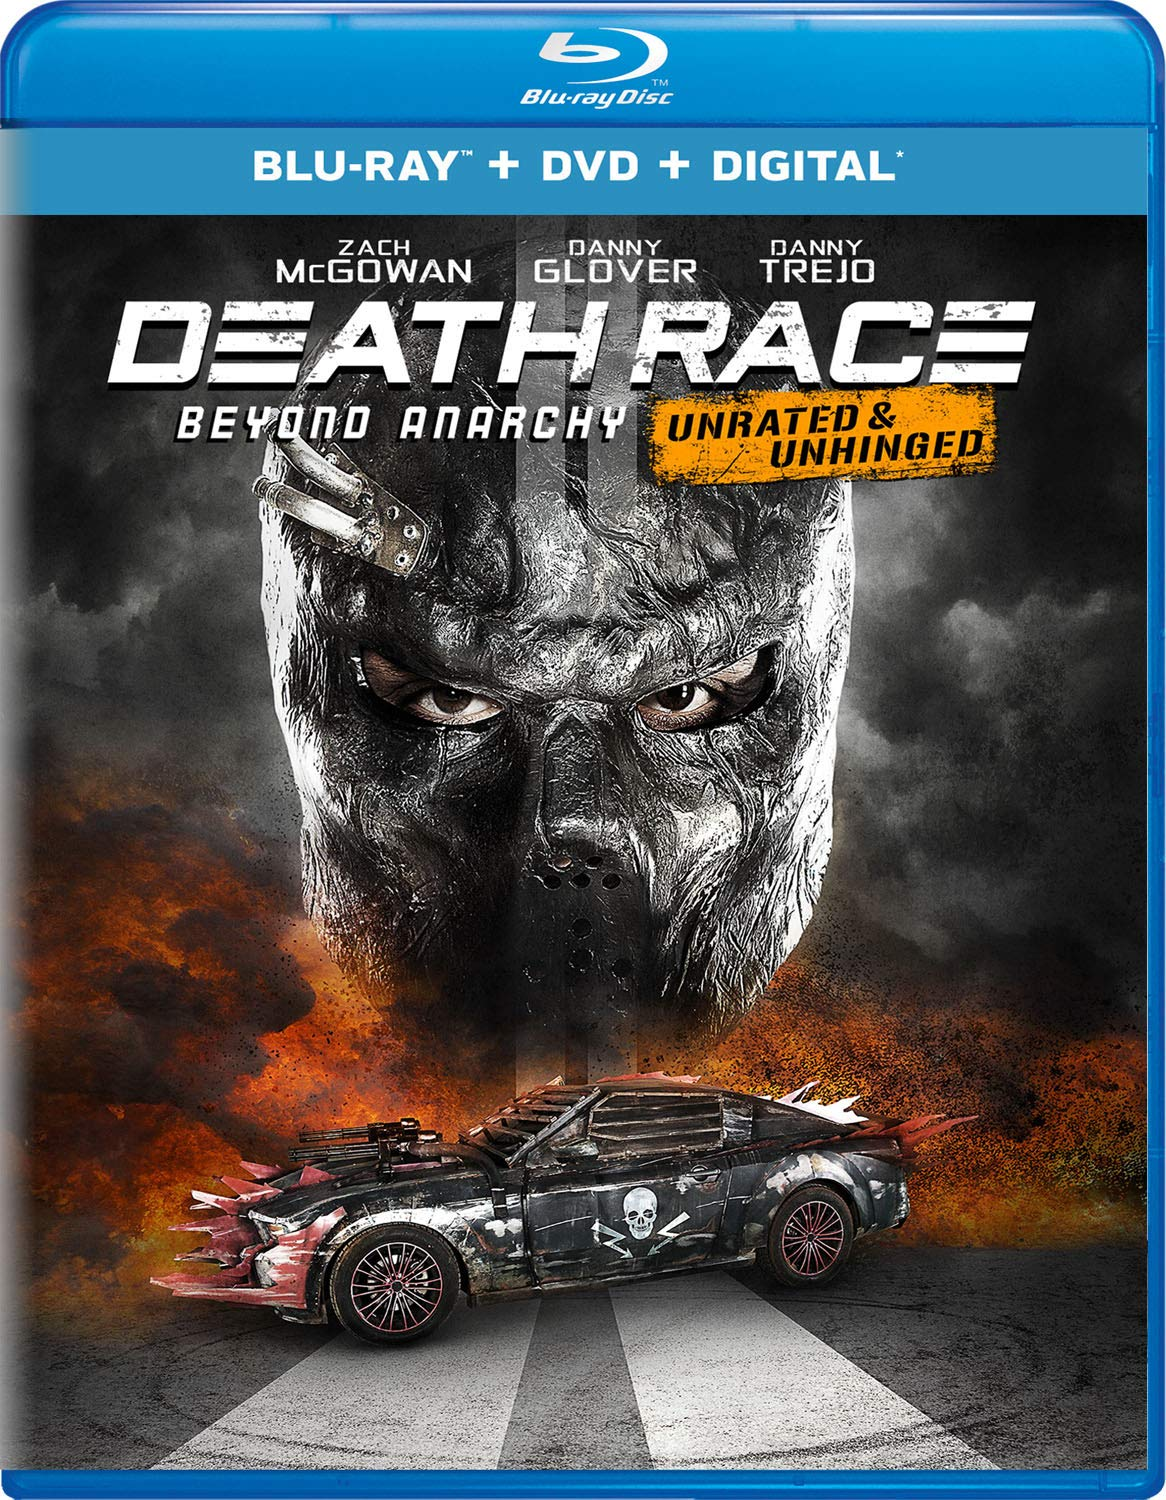 Blu-ray : Death Race: Beyond Anarchy (With DVD, 2 Pack, Digital Copy, 2PC)